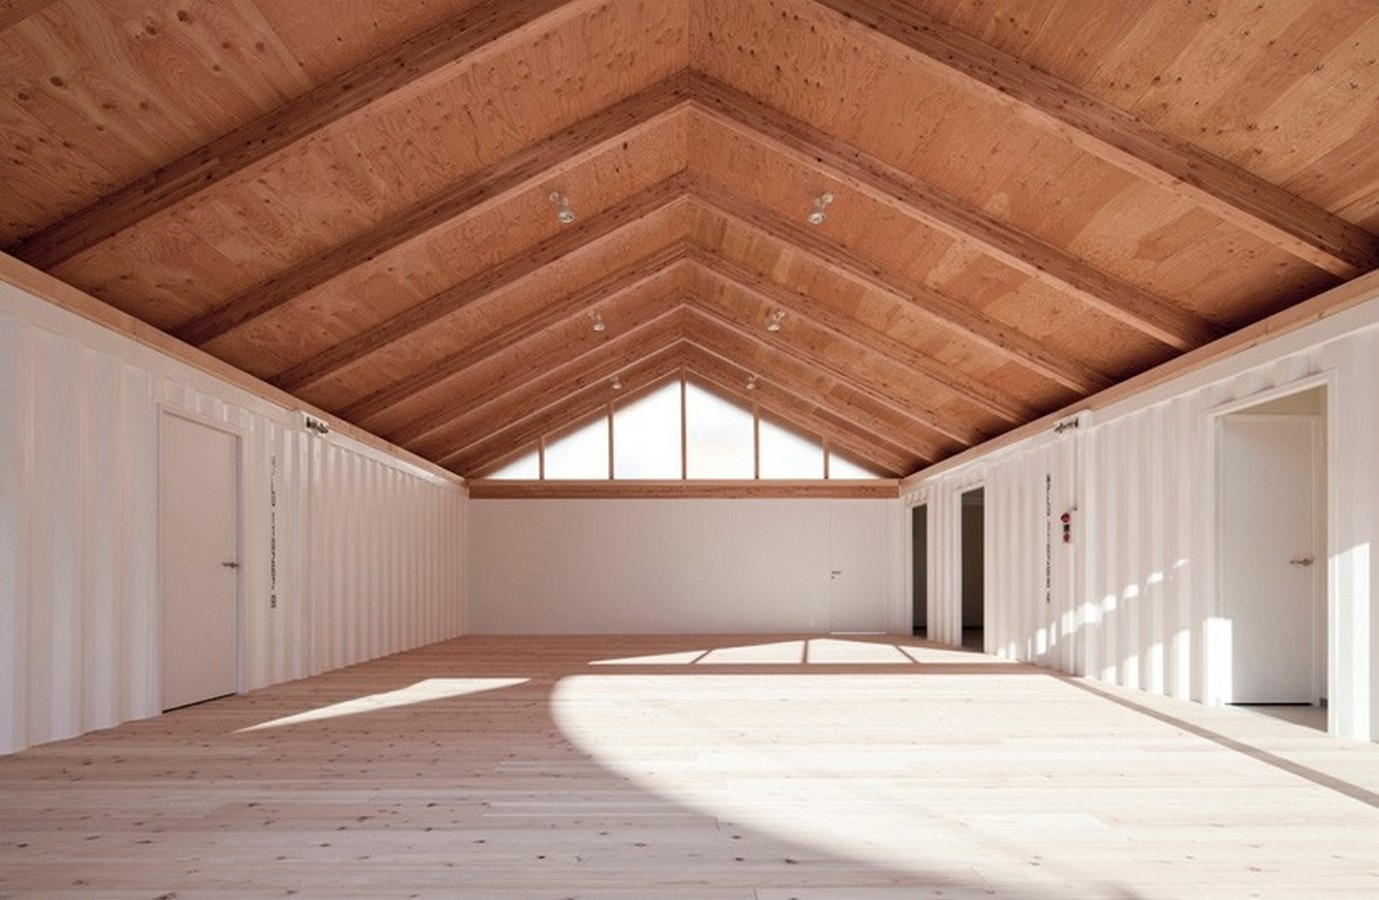 Onagawa Container by Shigeru Ban: Temporary Structures with Impactful Design Sheet8